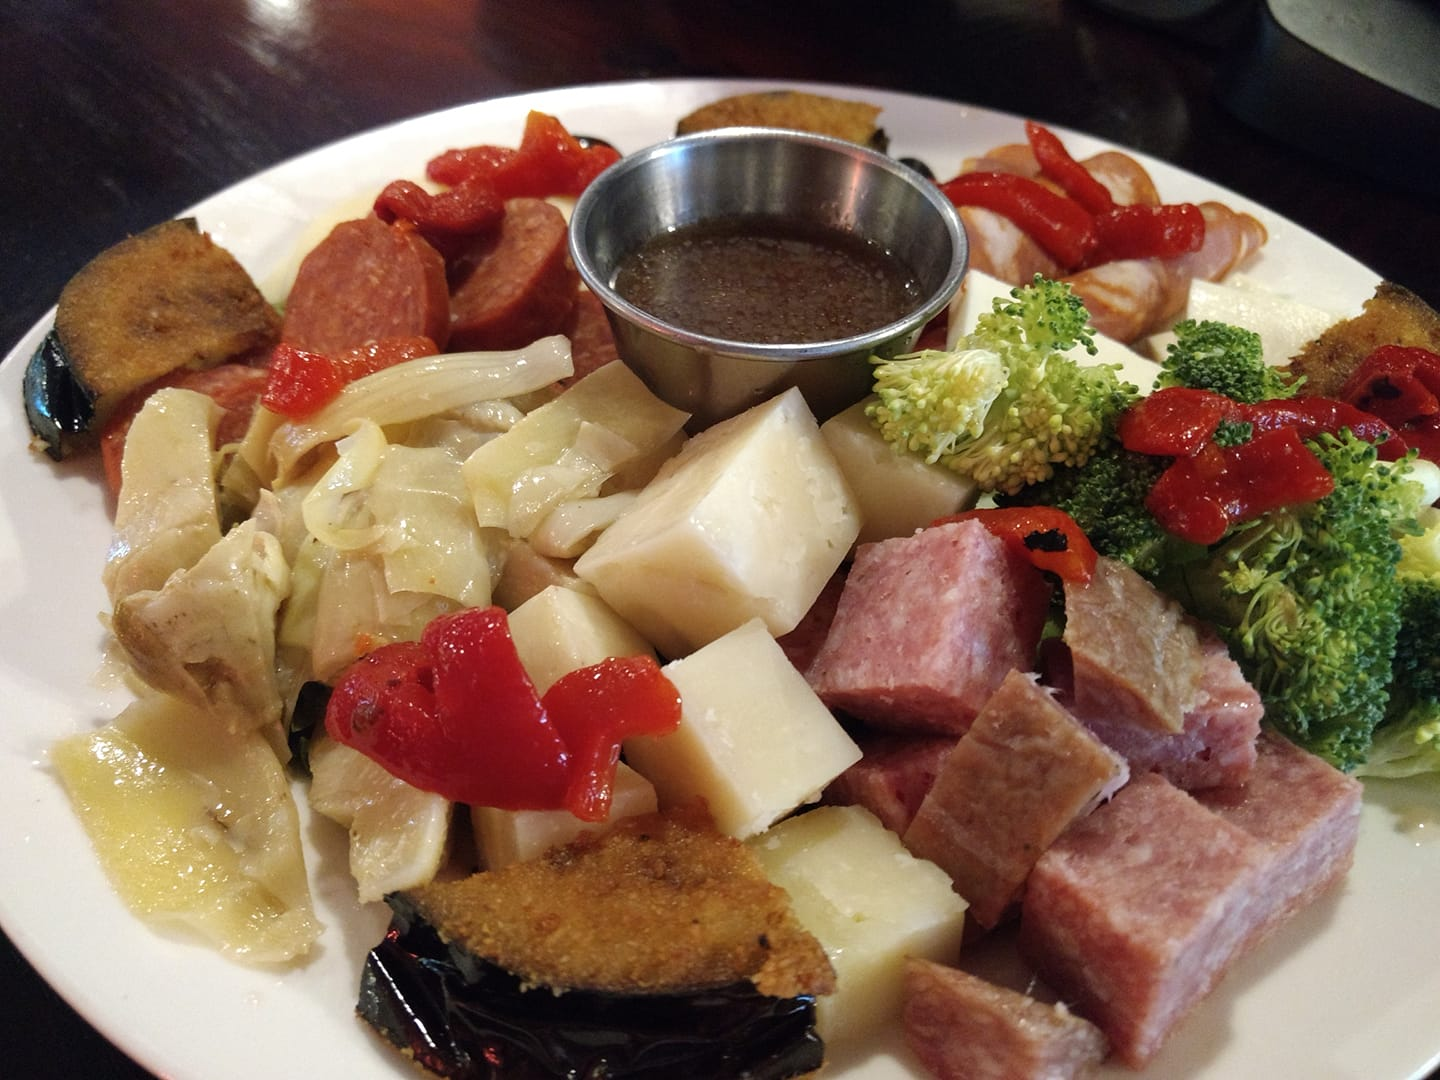 antipasto salad with italian meats and cheeses served with olives and vegetables